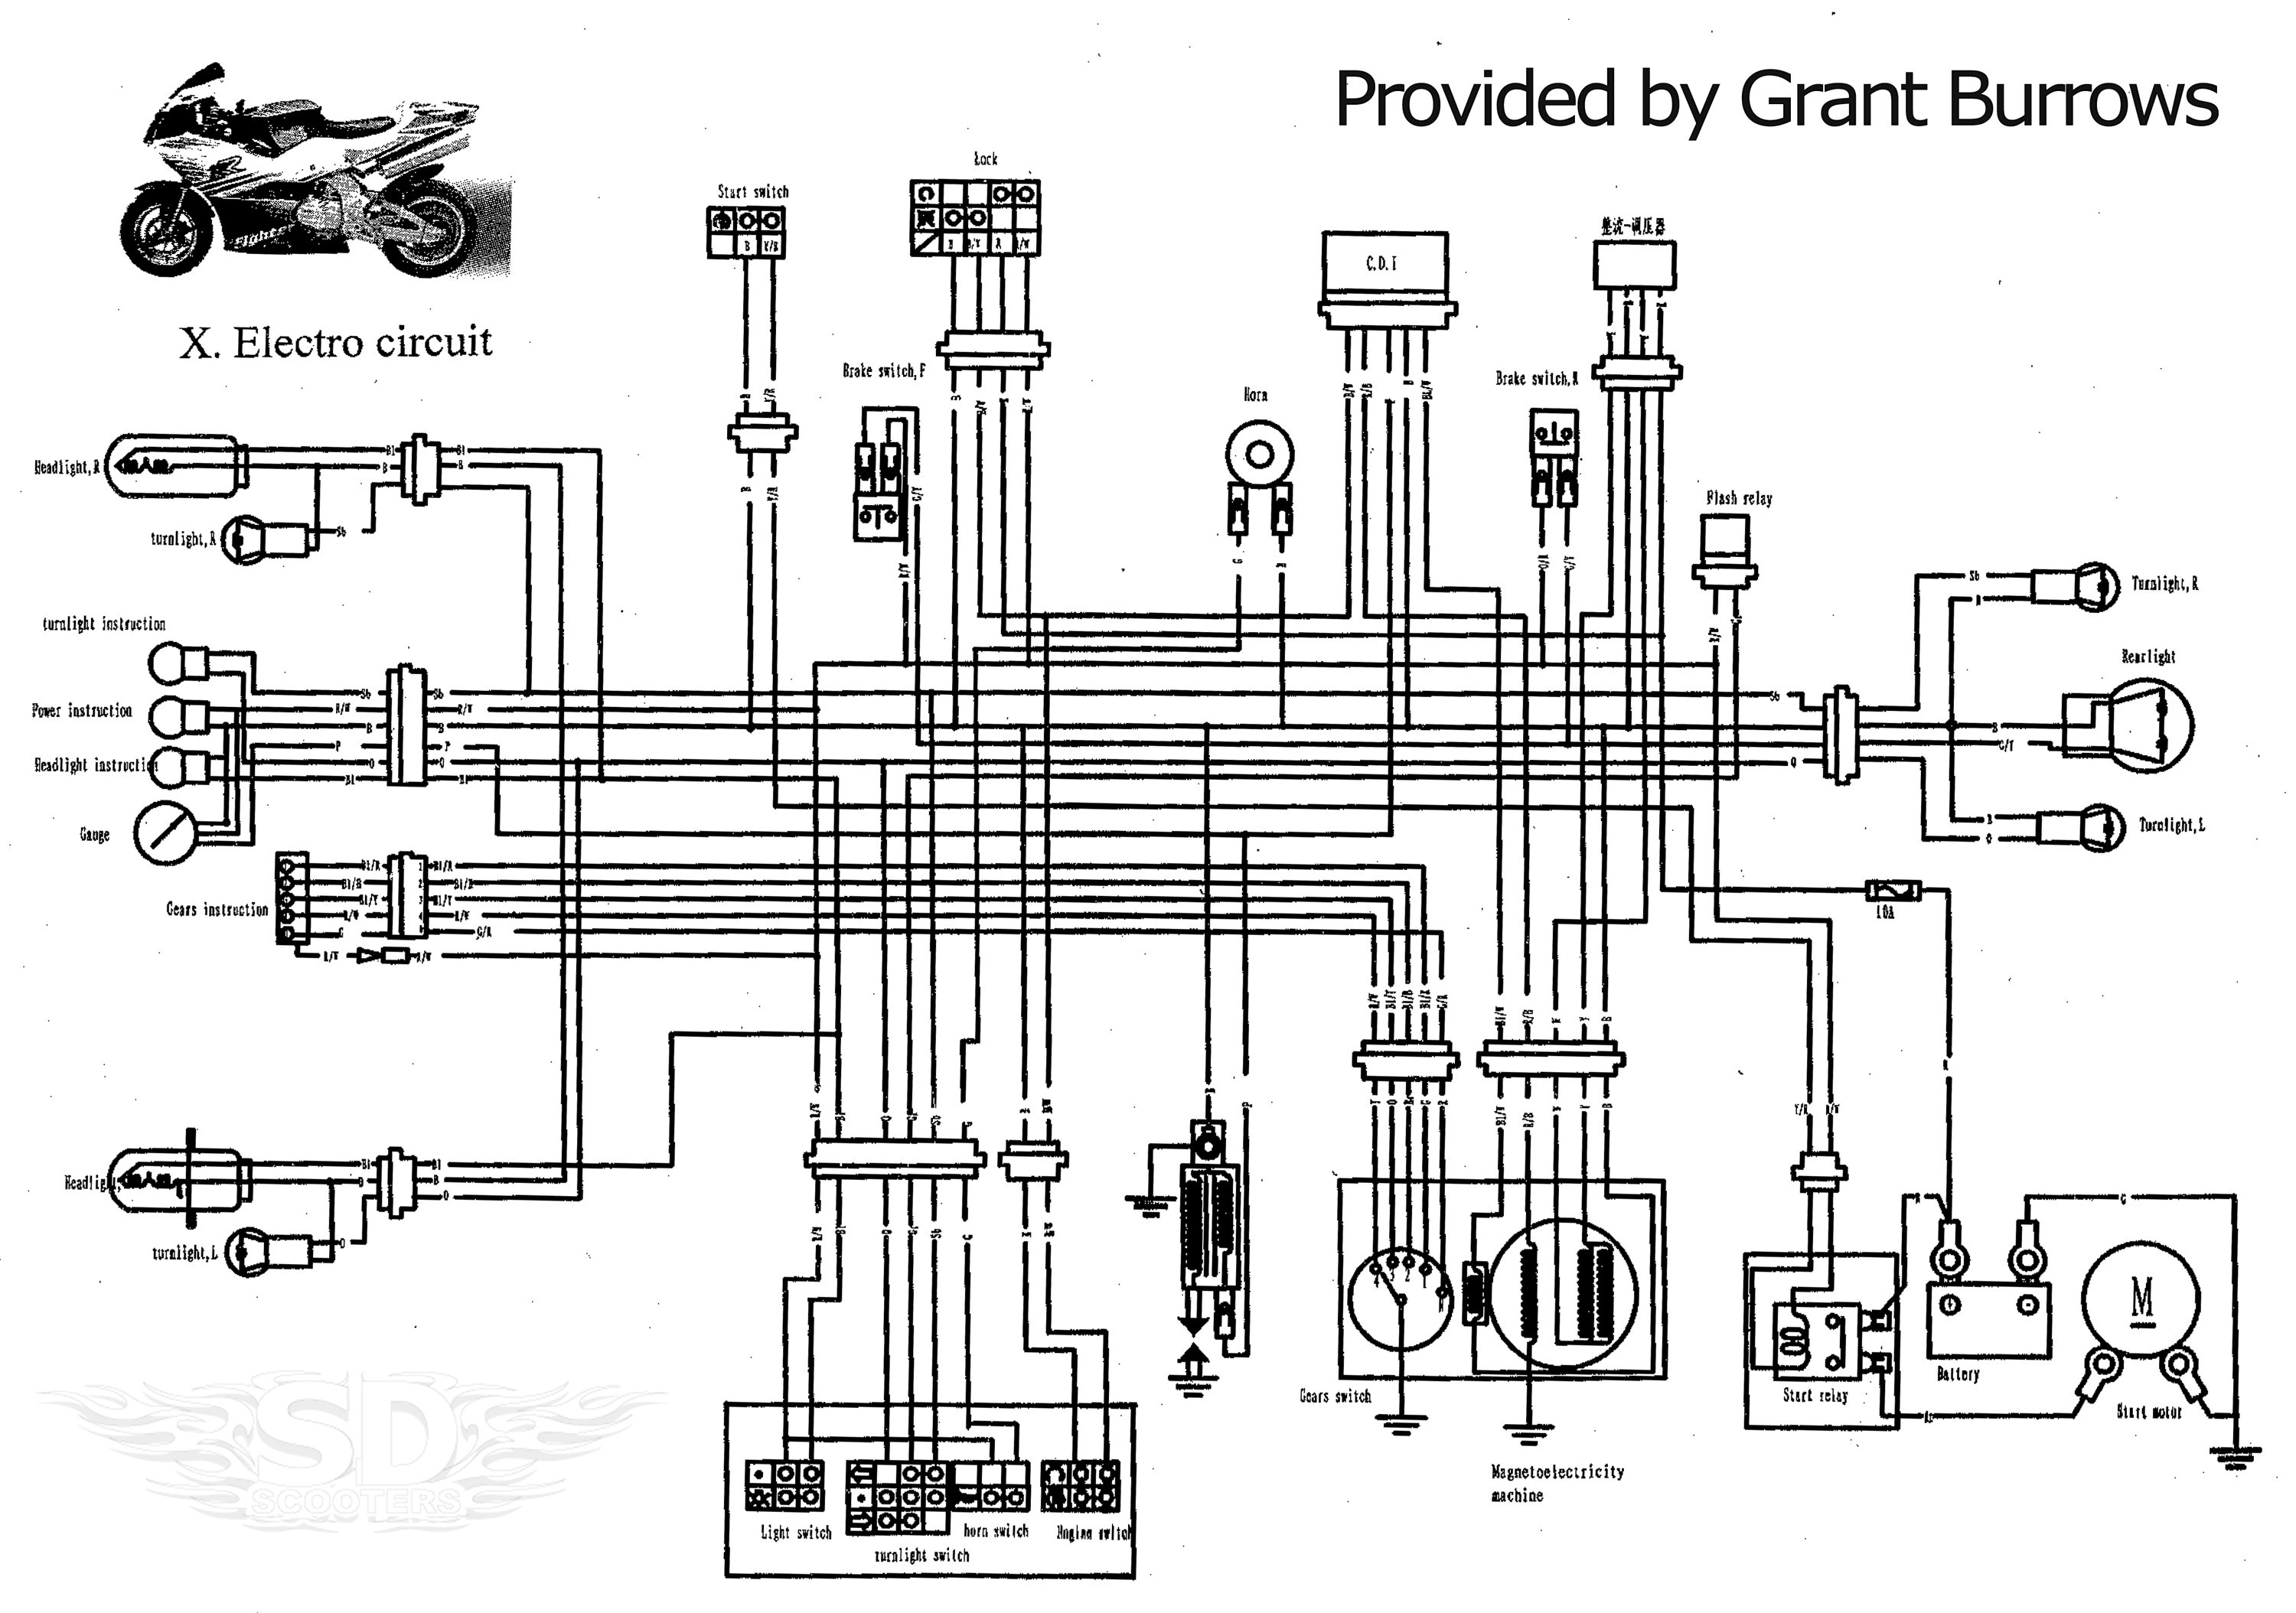 Diagram of car muffler basic car engine diagram awesome engine diagram of car muffler basic car engine diagram eye pocket bike wiring diagram get free of asfbconference2016 Image collections